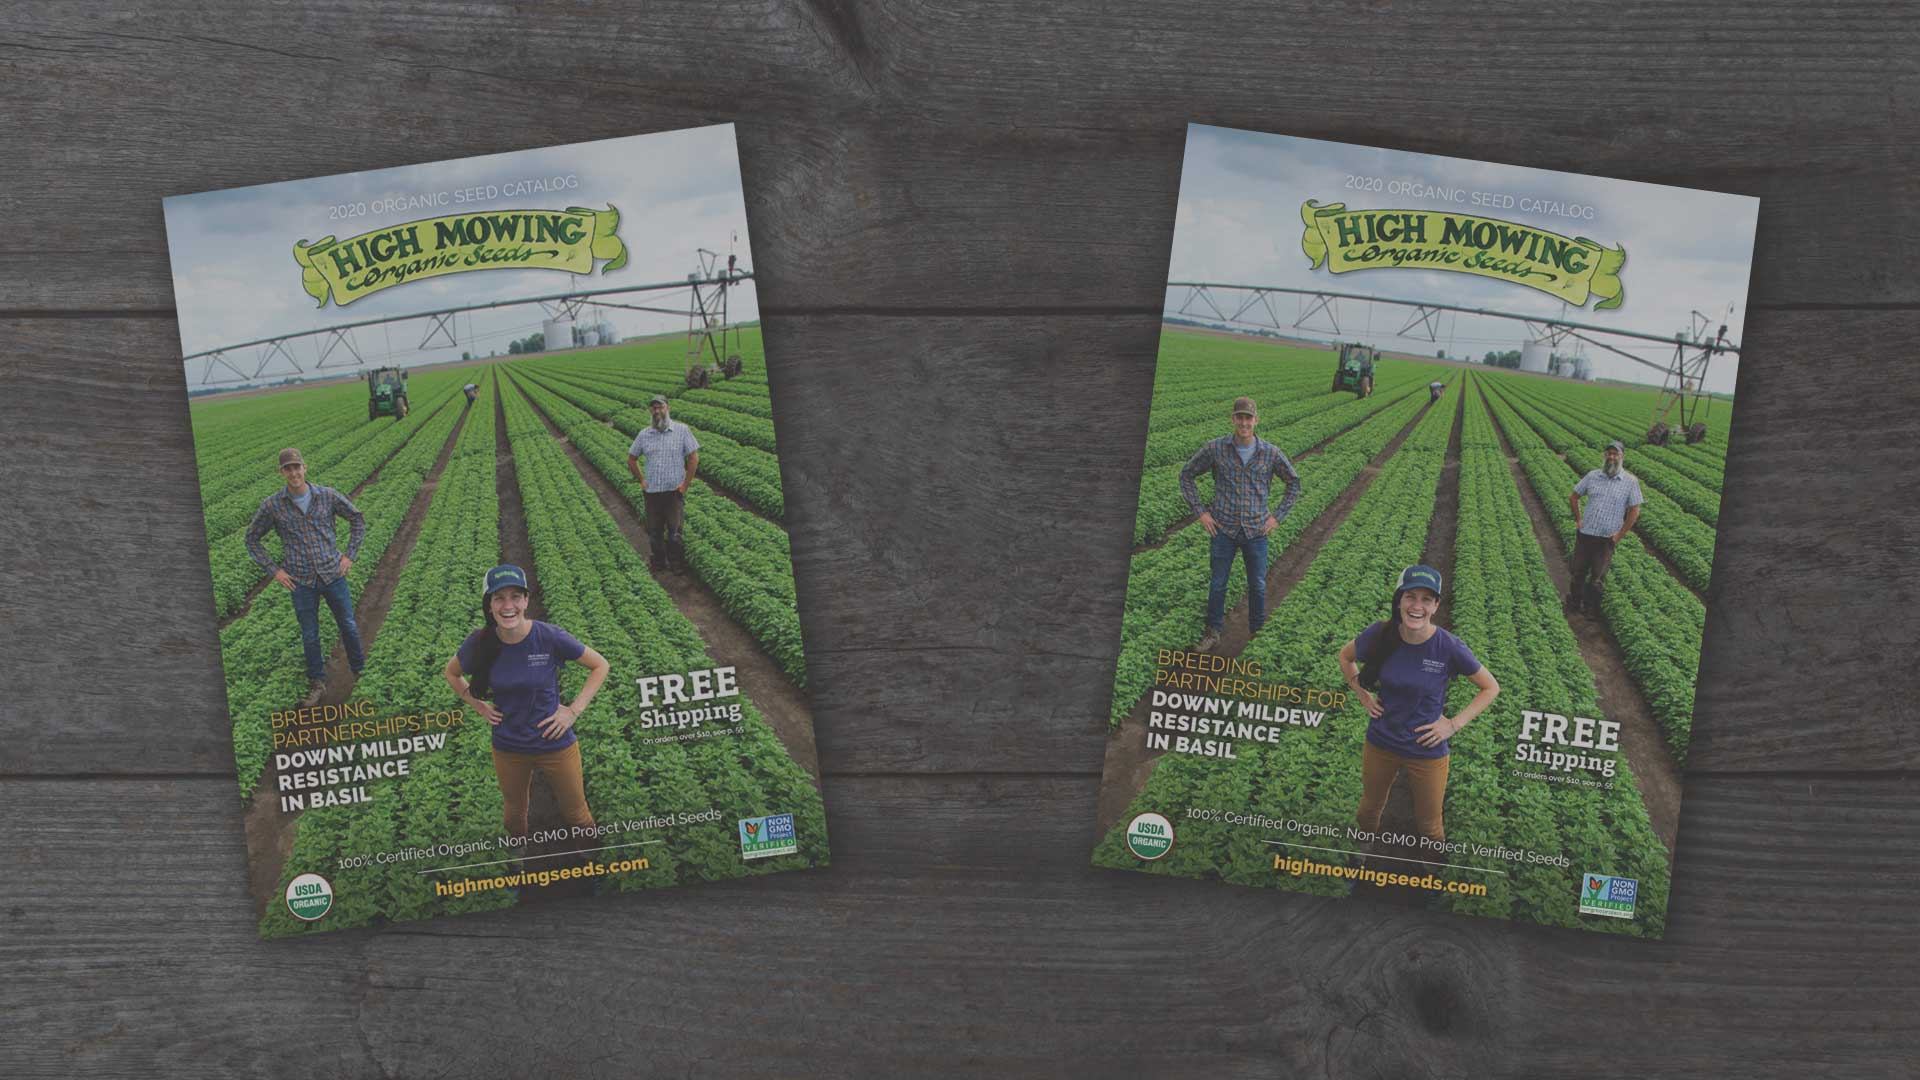 Order your 2020 Organic Non-GMO Seed Catalog from High Mowing Organic Seeds